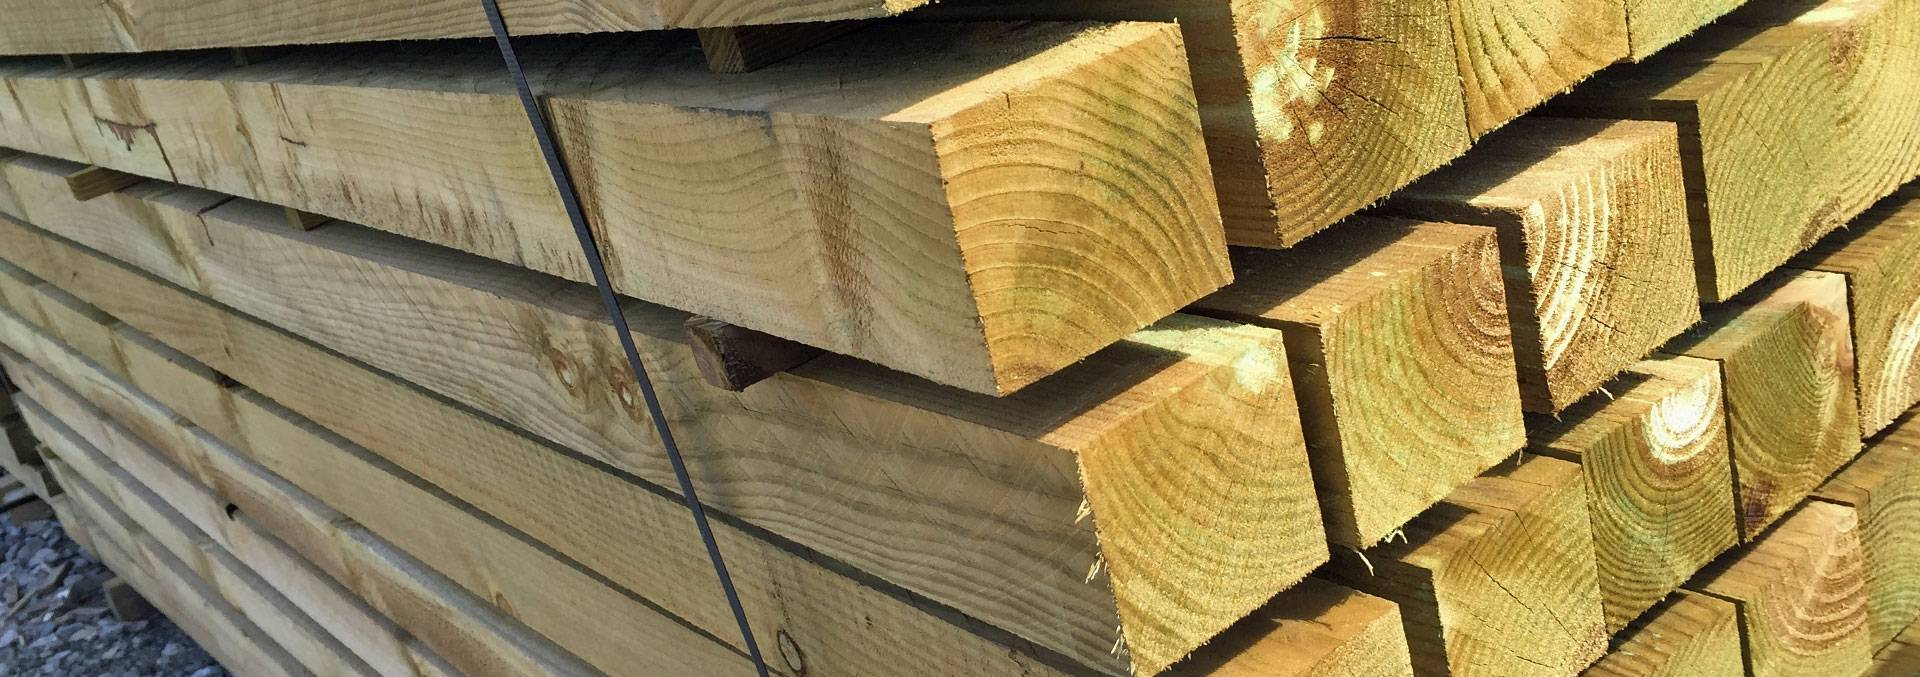 Timber Posts - Pressure Treated - Brown or Green.jpg